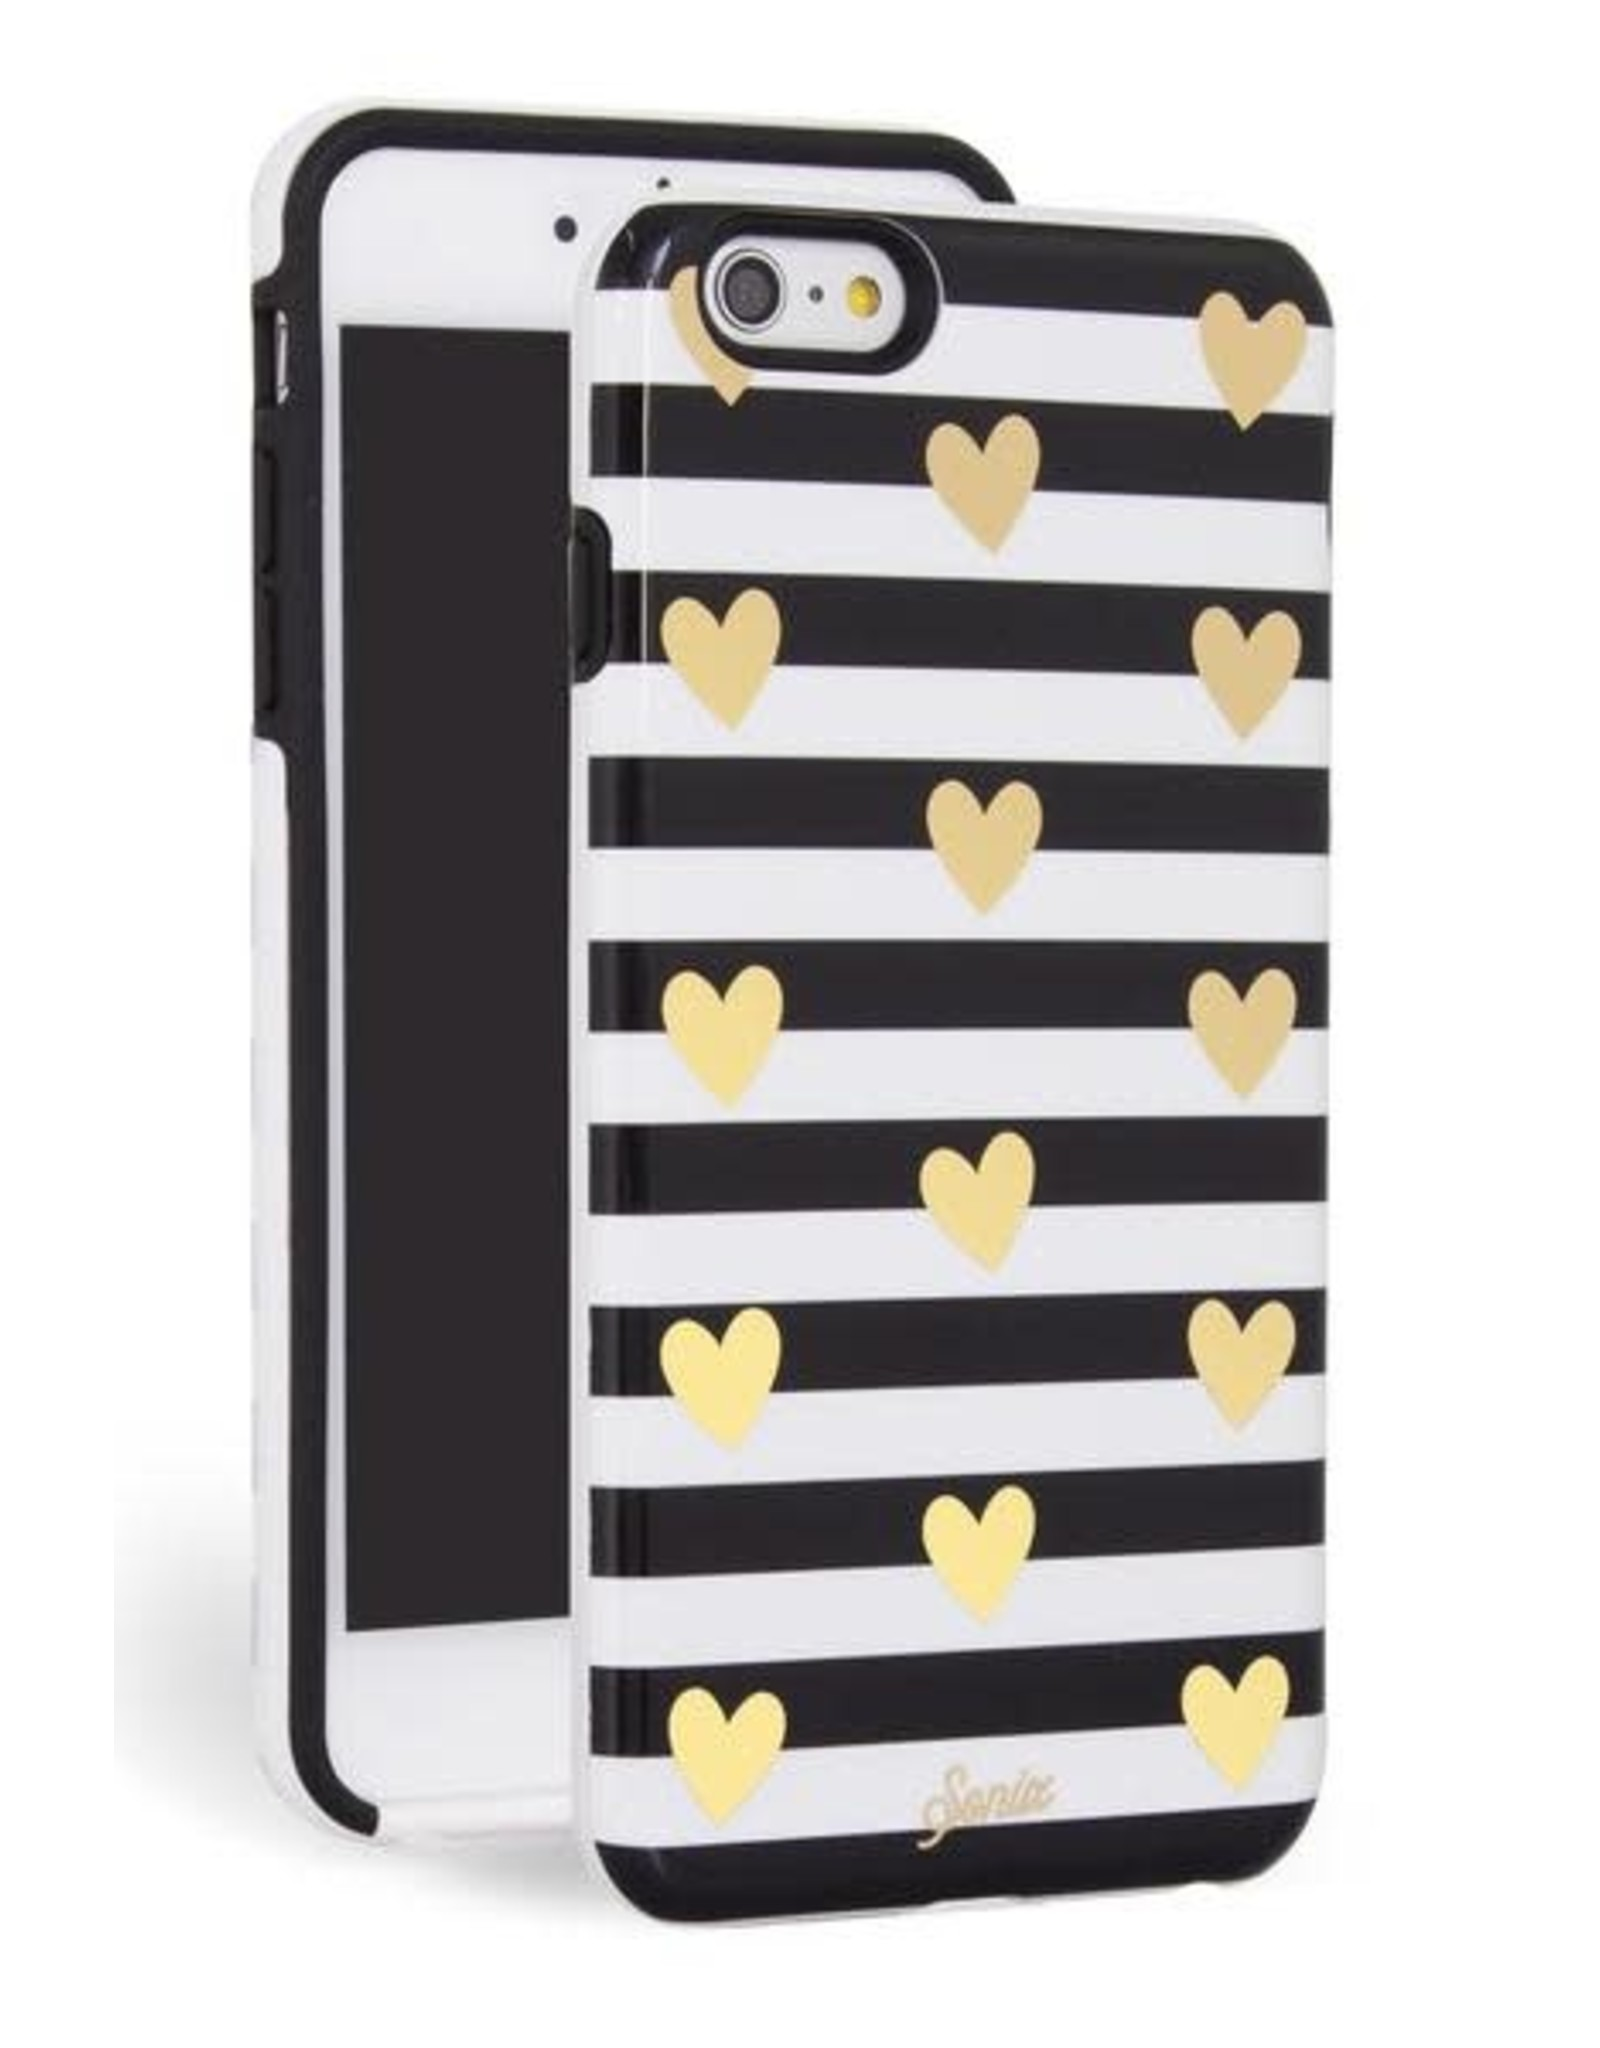 Sonix Sonix Inlay for iPhone 6/6s Plus - Heart Stripe Gold EOL